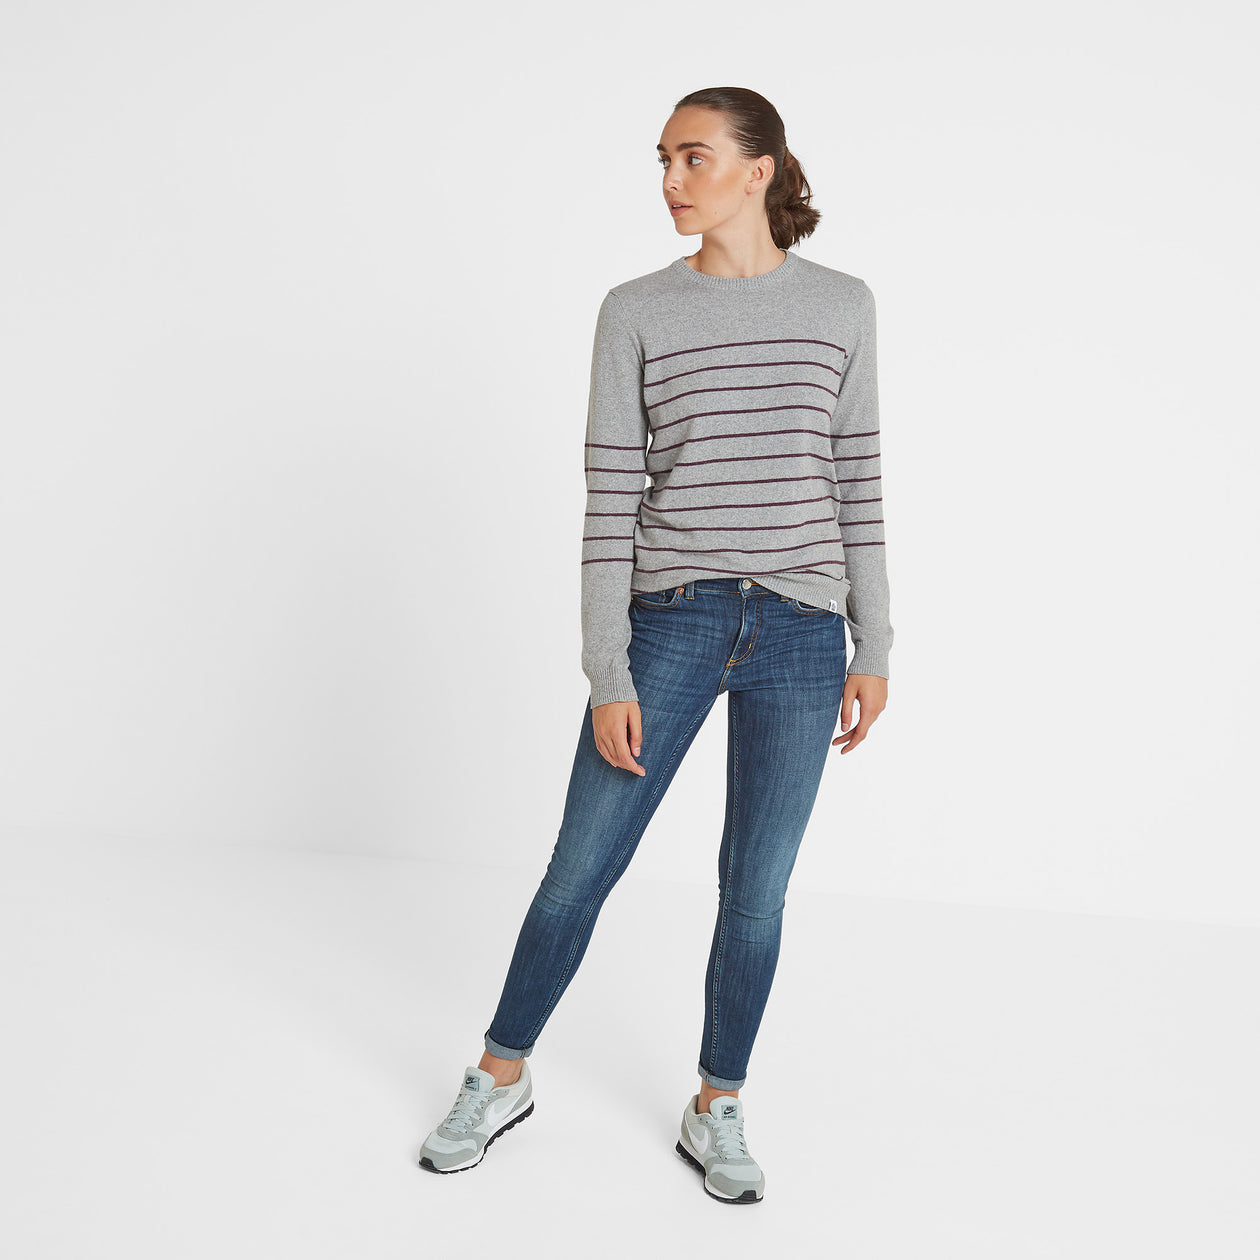 Patsy Womens Striped Jumper - Light Grey/Aubergine image 4